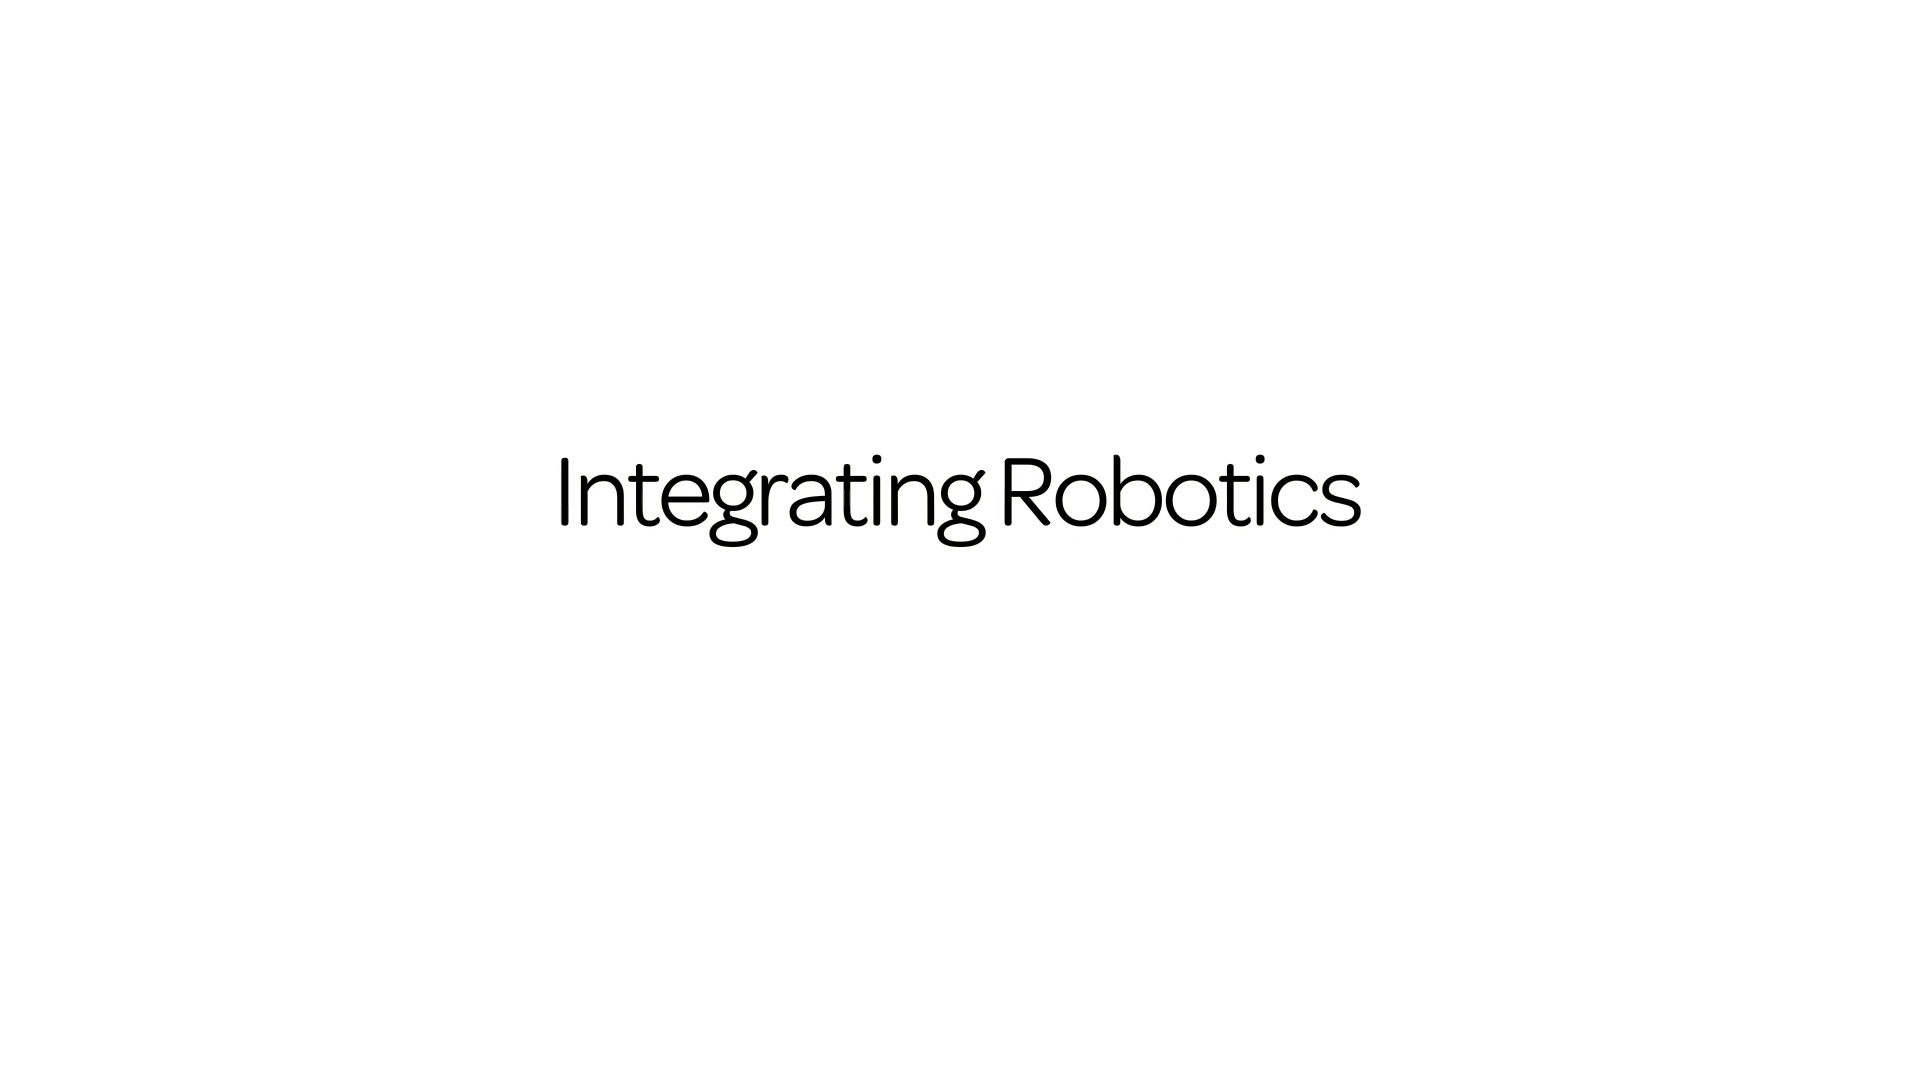 Integrating robotics anywhere near people must take into account the way humans navigate their lives.